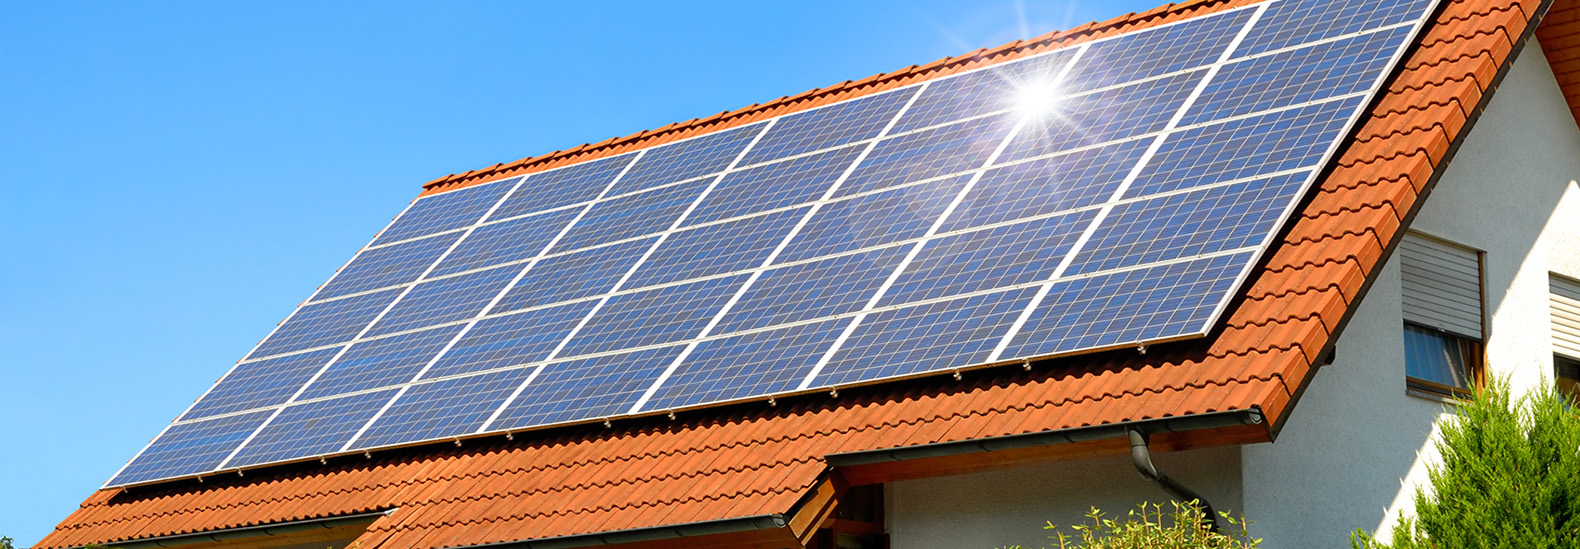 Delightful Itu0027s Official: California Is The First US State To Require Solar Energy For  New Houses